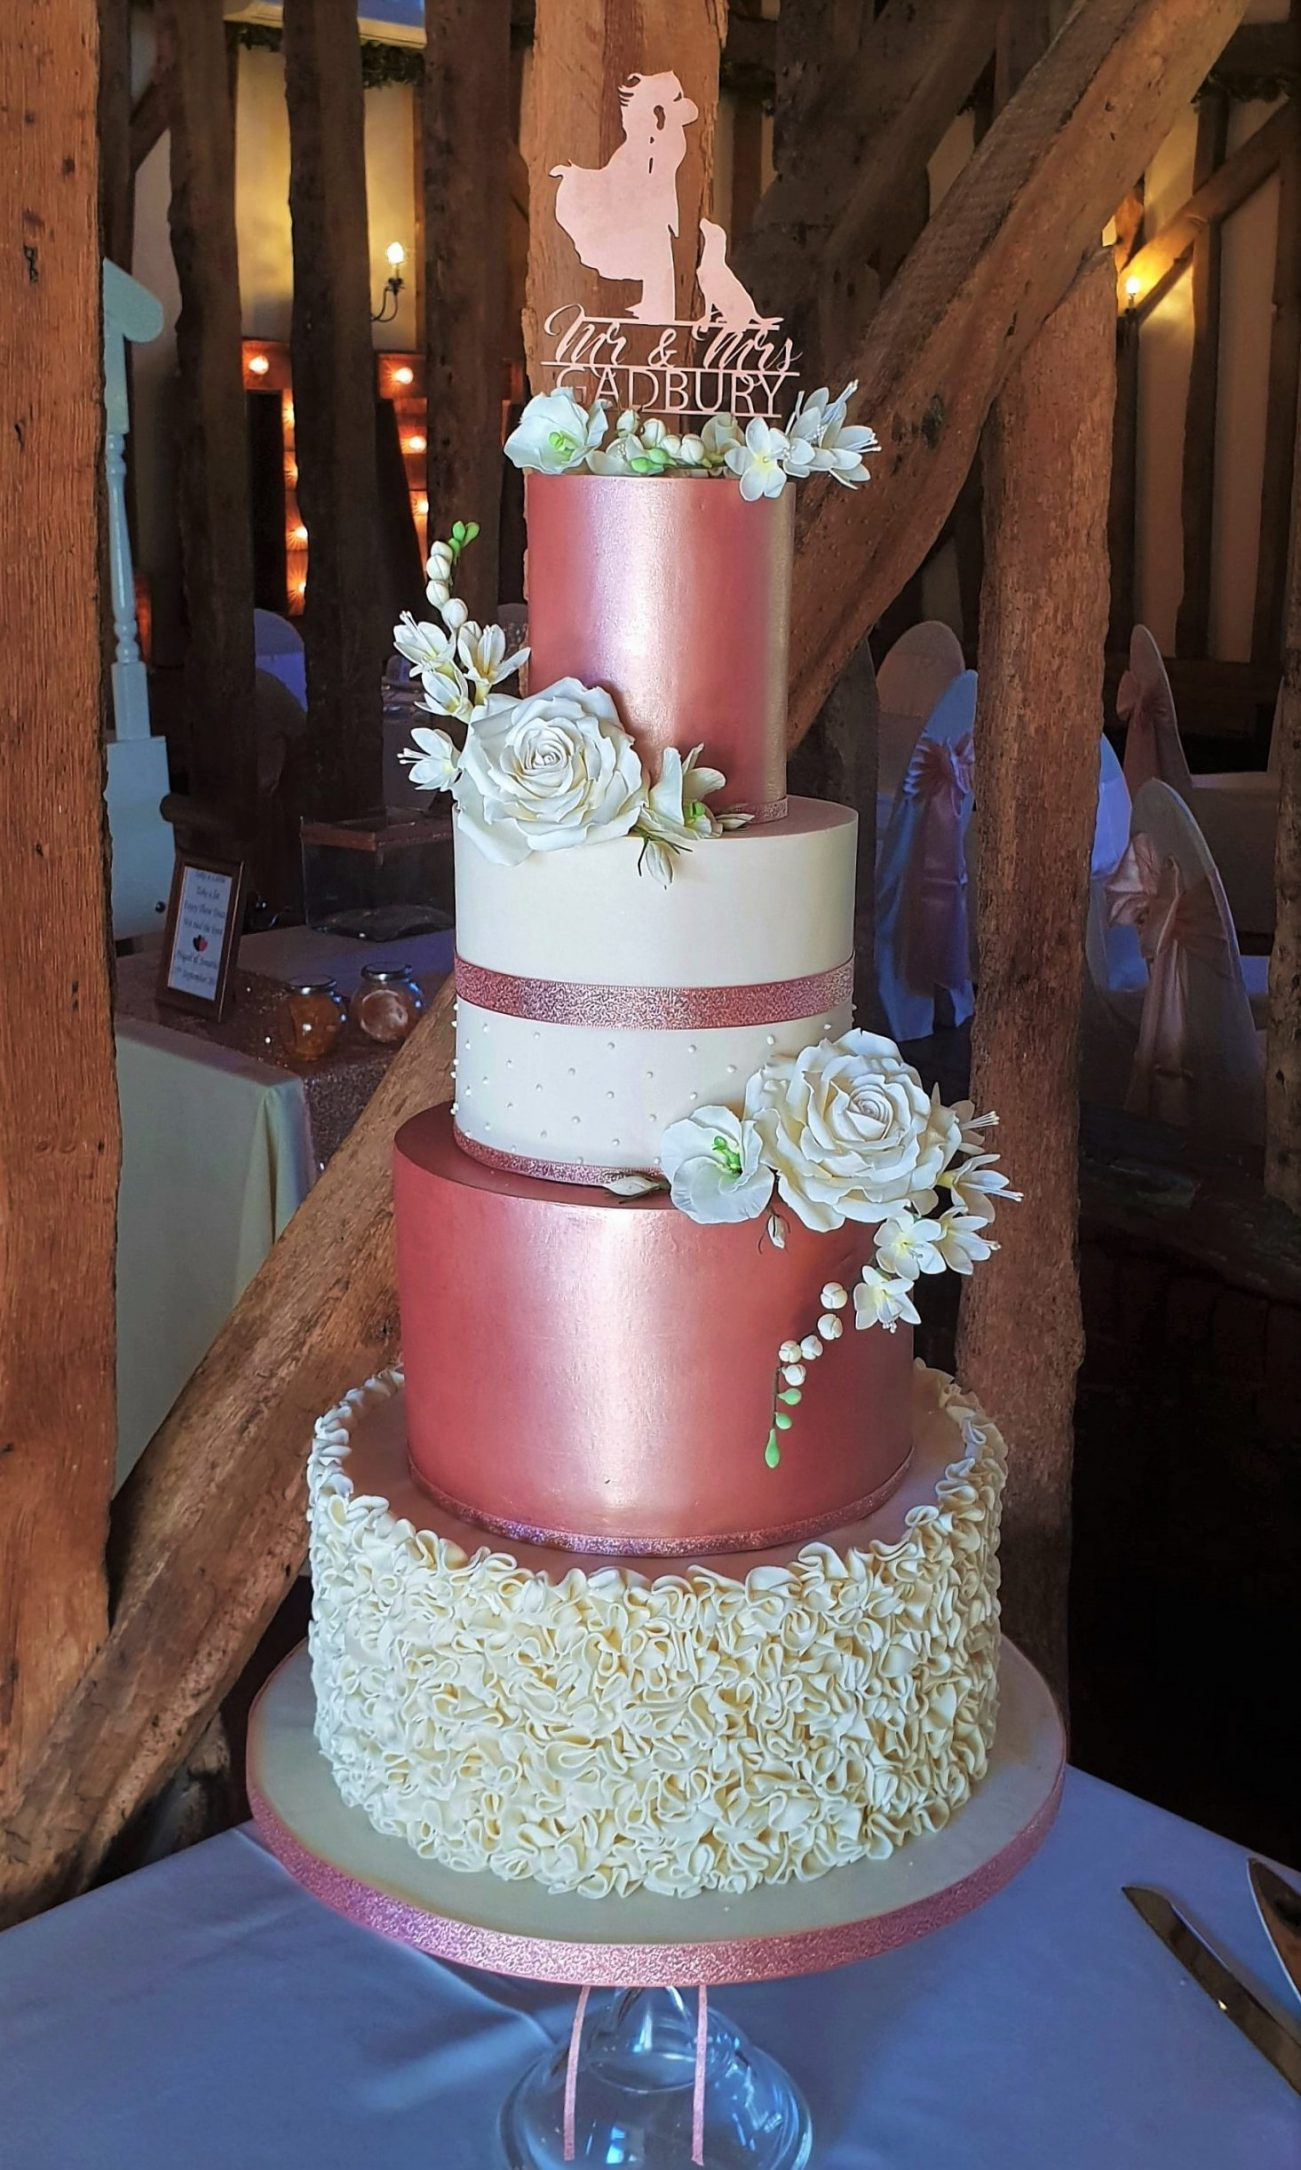 Copper rose gold ivory ruffle wedding cake sugar flowers Crondon Park Essex